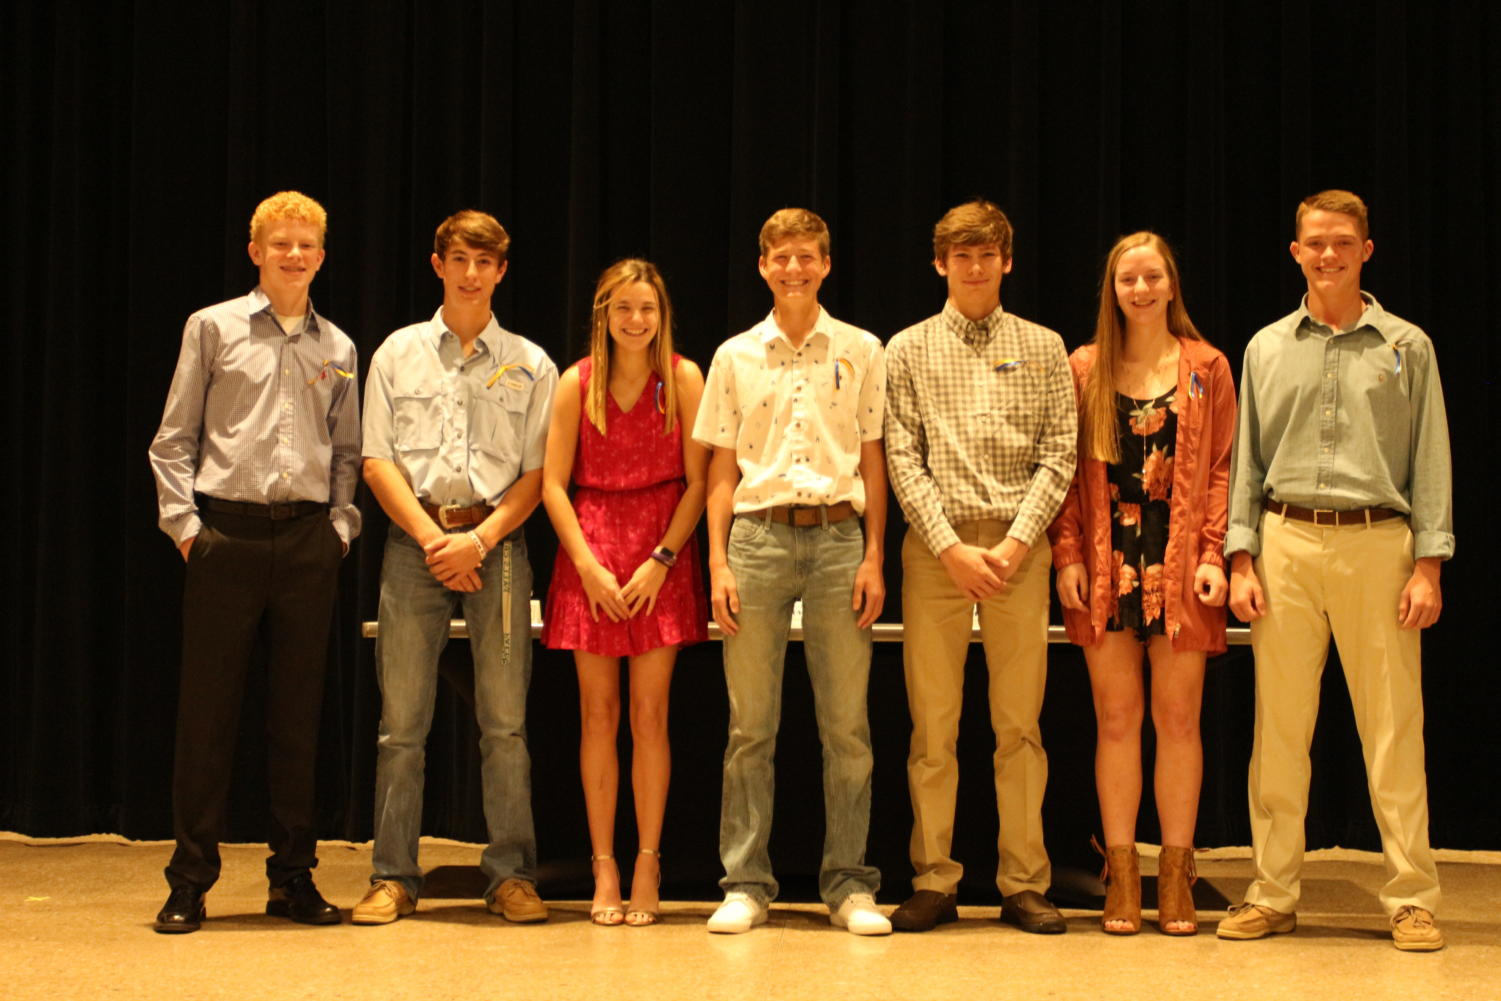 Sophomores Luke Haehn, Carter Hilbers, Kayli Mahler, Davis Mays, Callen McCasland, Emily Saylers, and Cade Strickland were inducted into NHS Sunday Oct. 28.